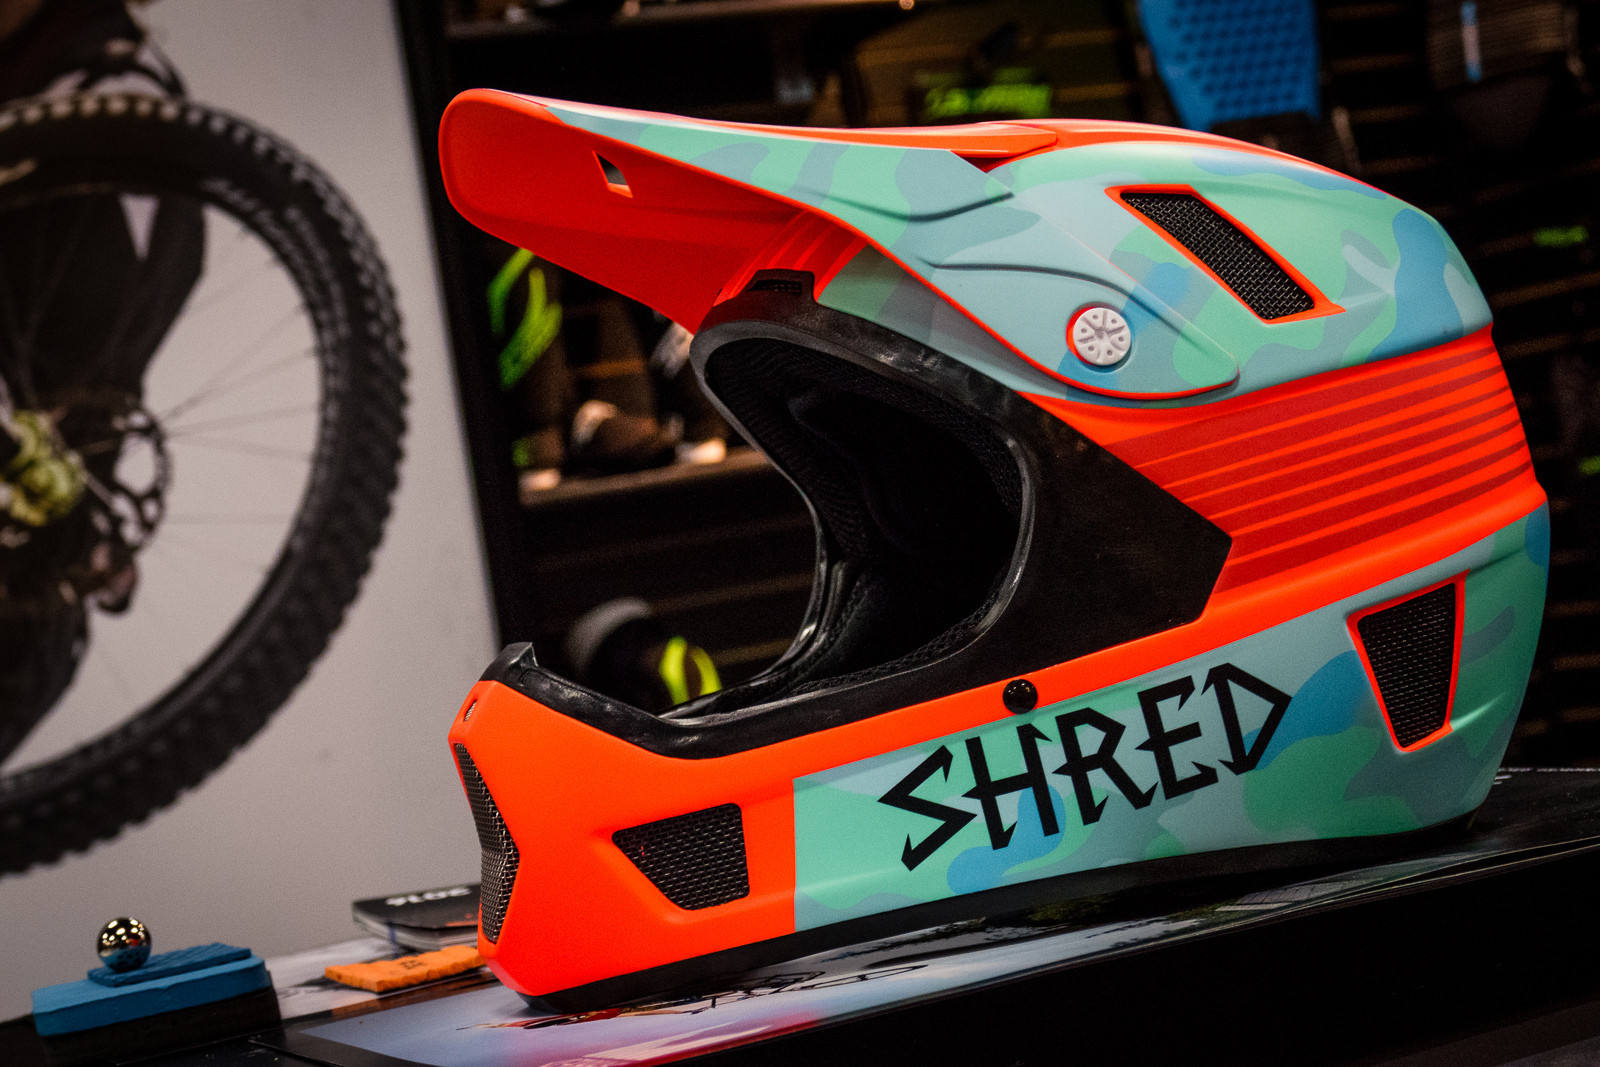 Shred Brainbox Full Face Helmet - 2016 Protective Gear and Apparel at Interbike - Mountain Biking Pictures - Vital MTB